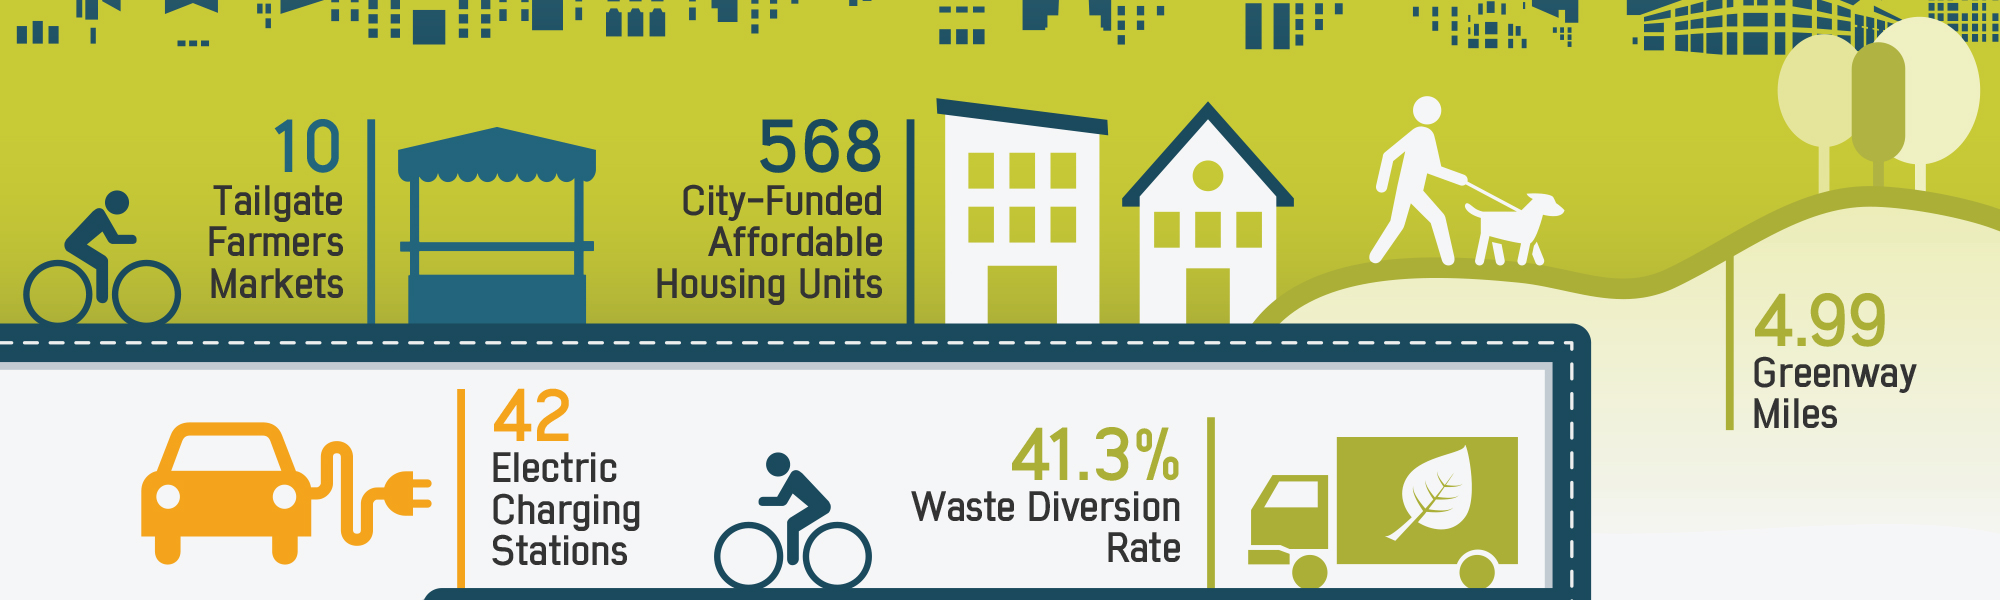 local government infographic on sustainability